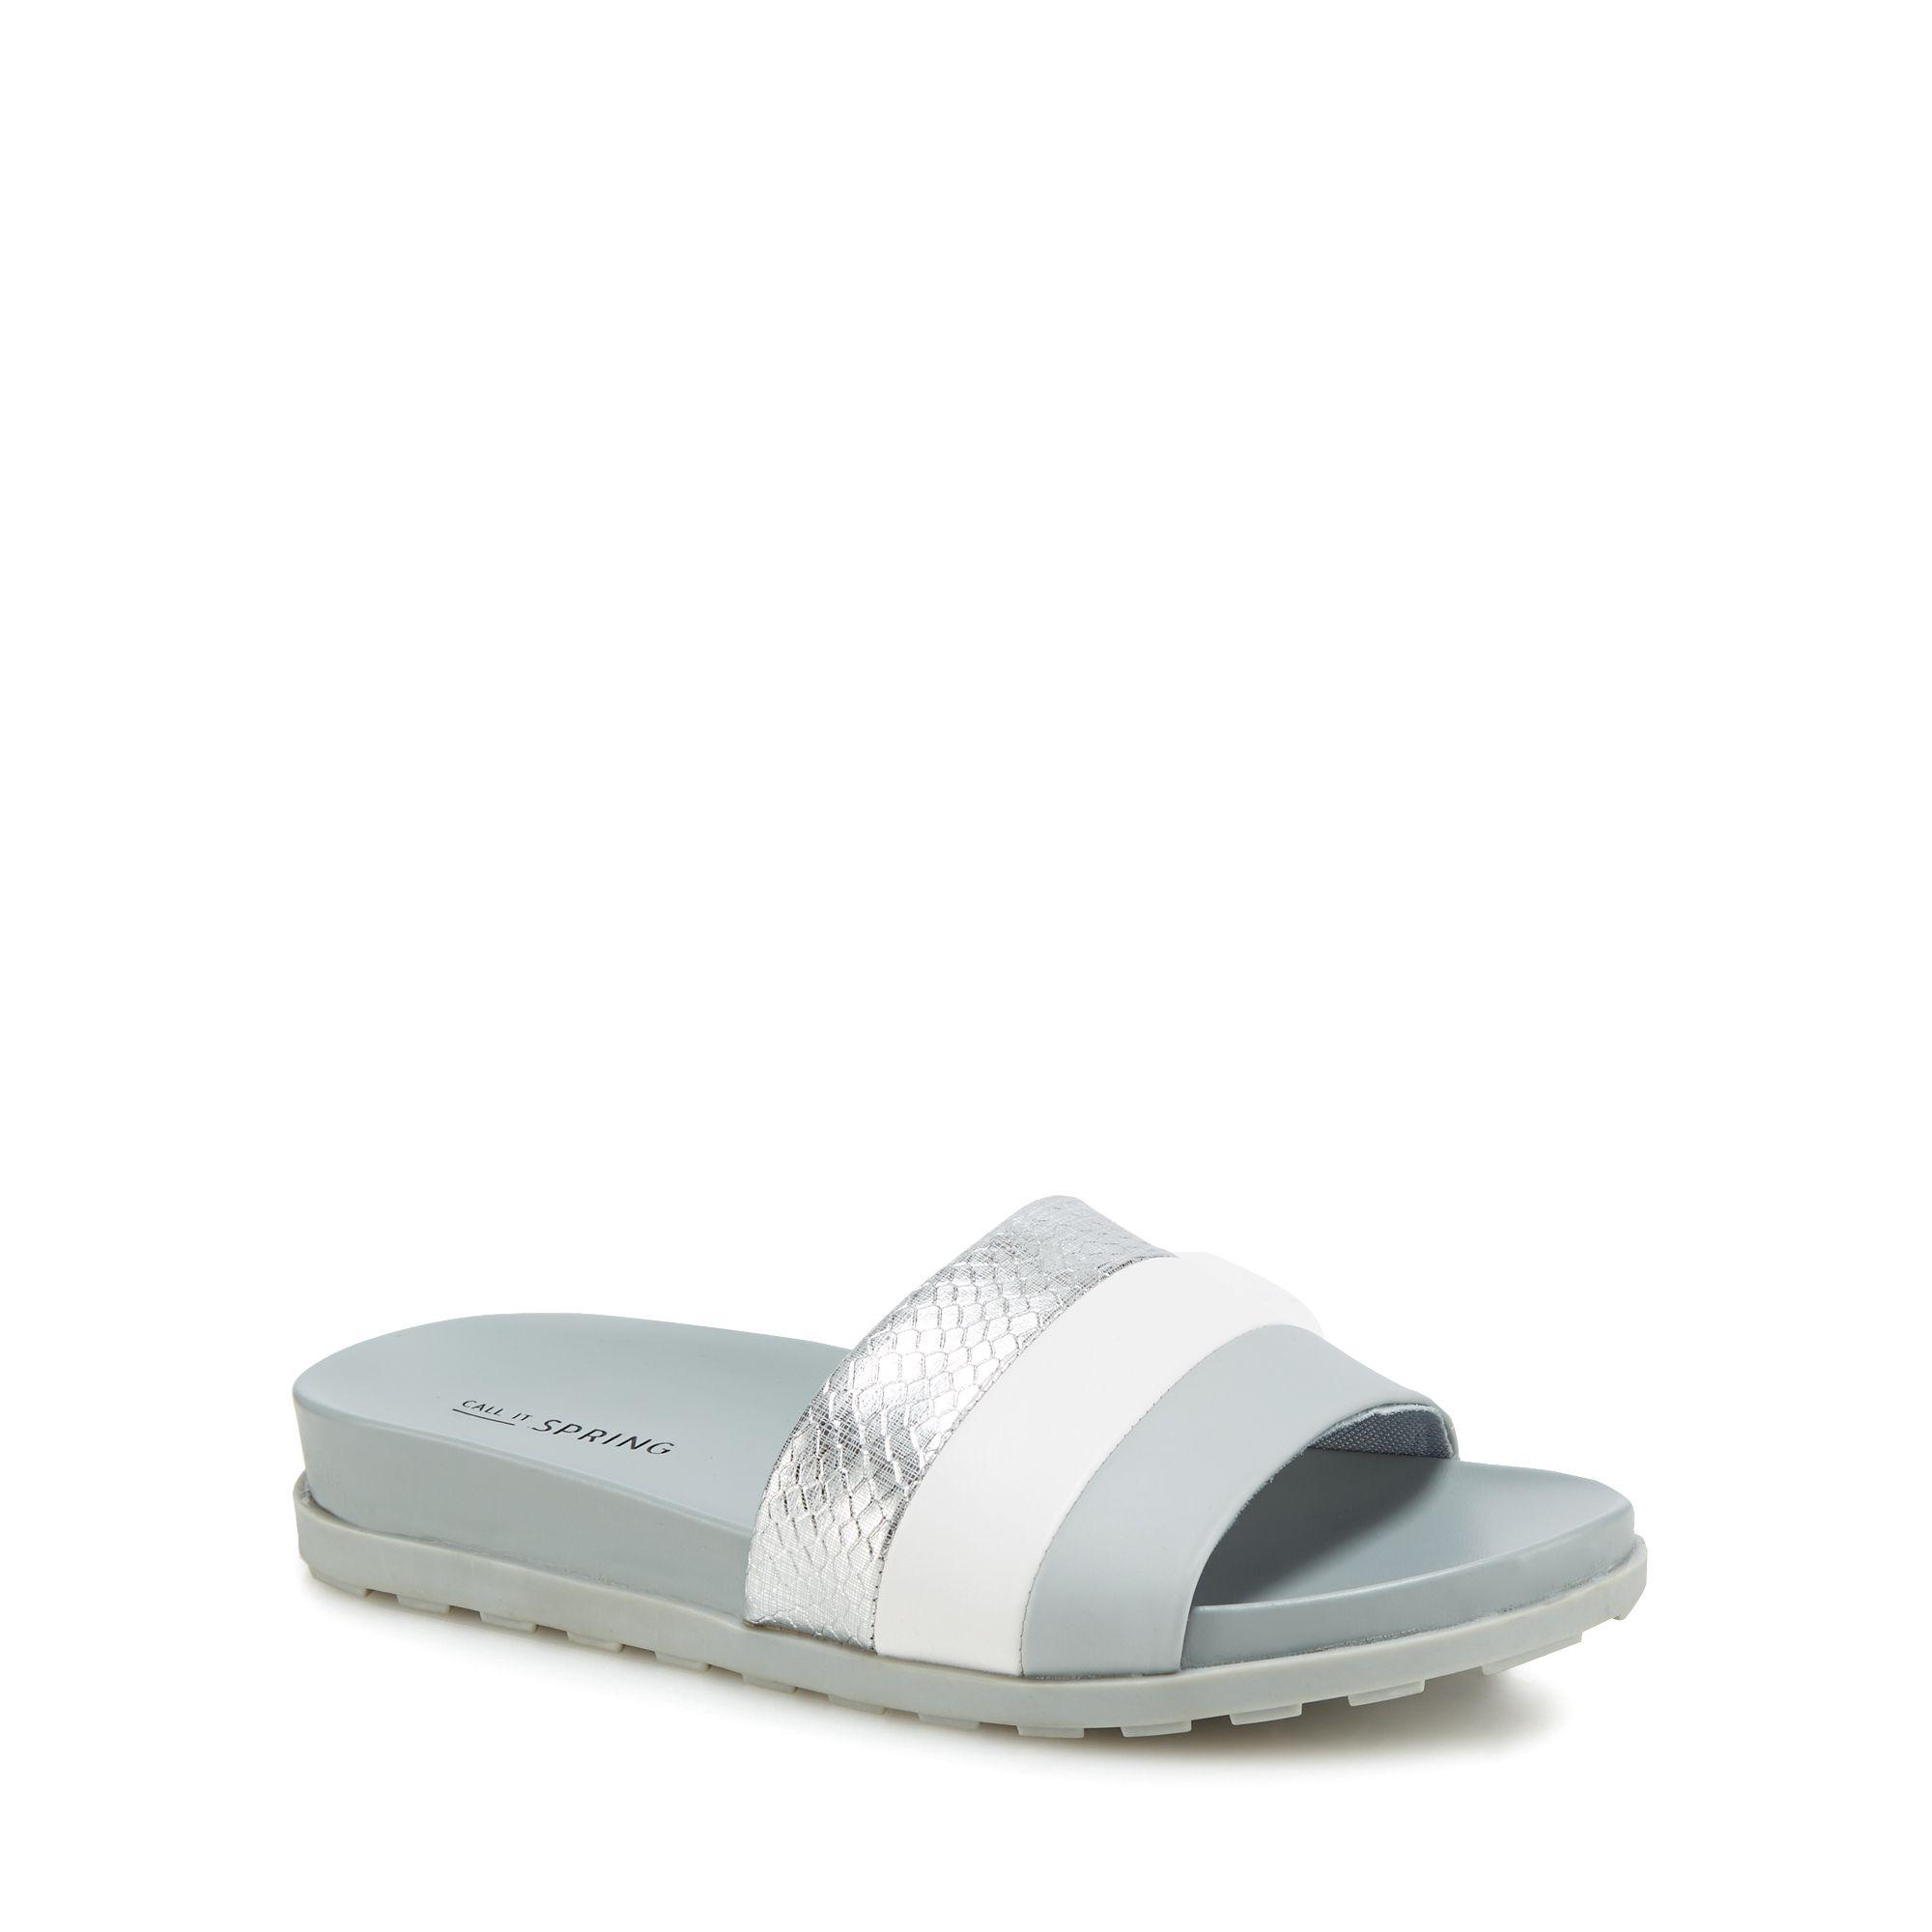 Grey 'Kedoedien' sliders free shipping 100% guaranteed cheap sale amazon extremely cheap price u3YPXmTg5